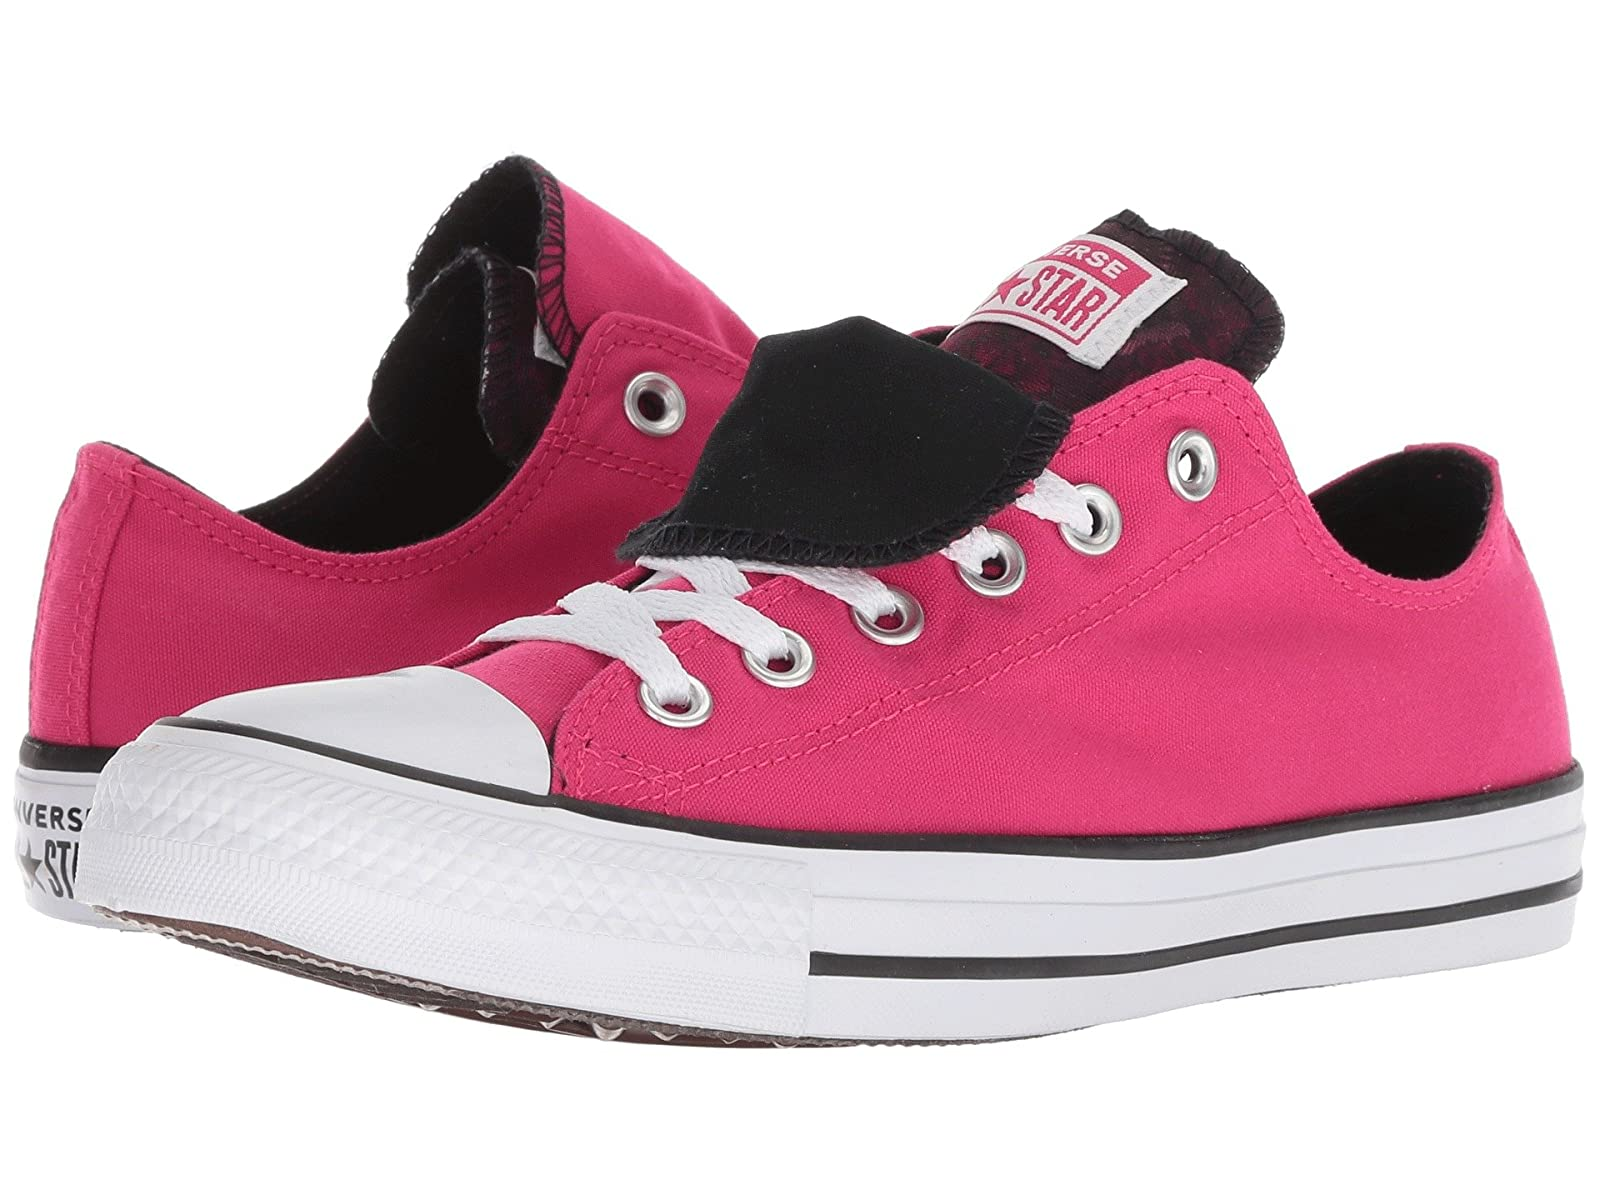 Converse Chuck Taylor All Star Double Tongue - Floral OxAtmospheric grades have affordable shoes